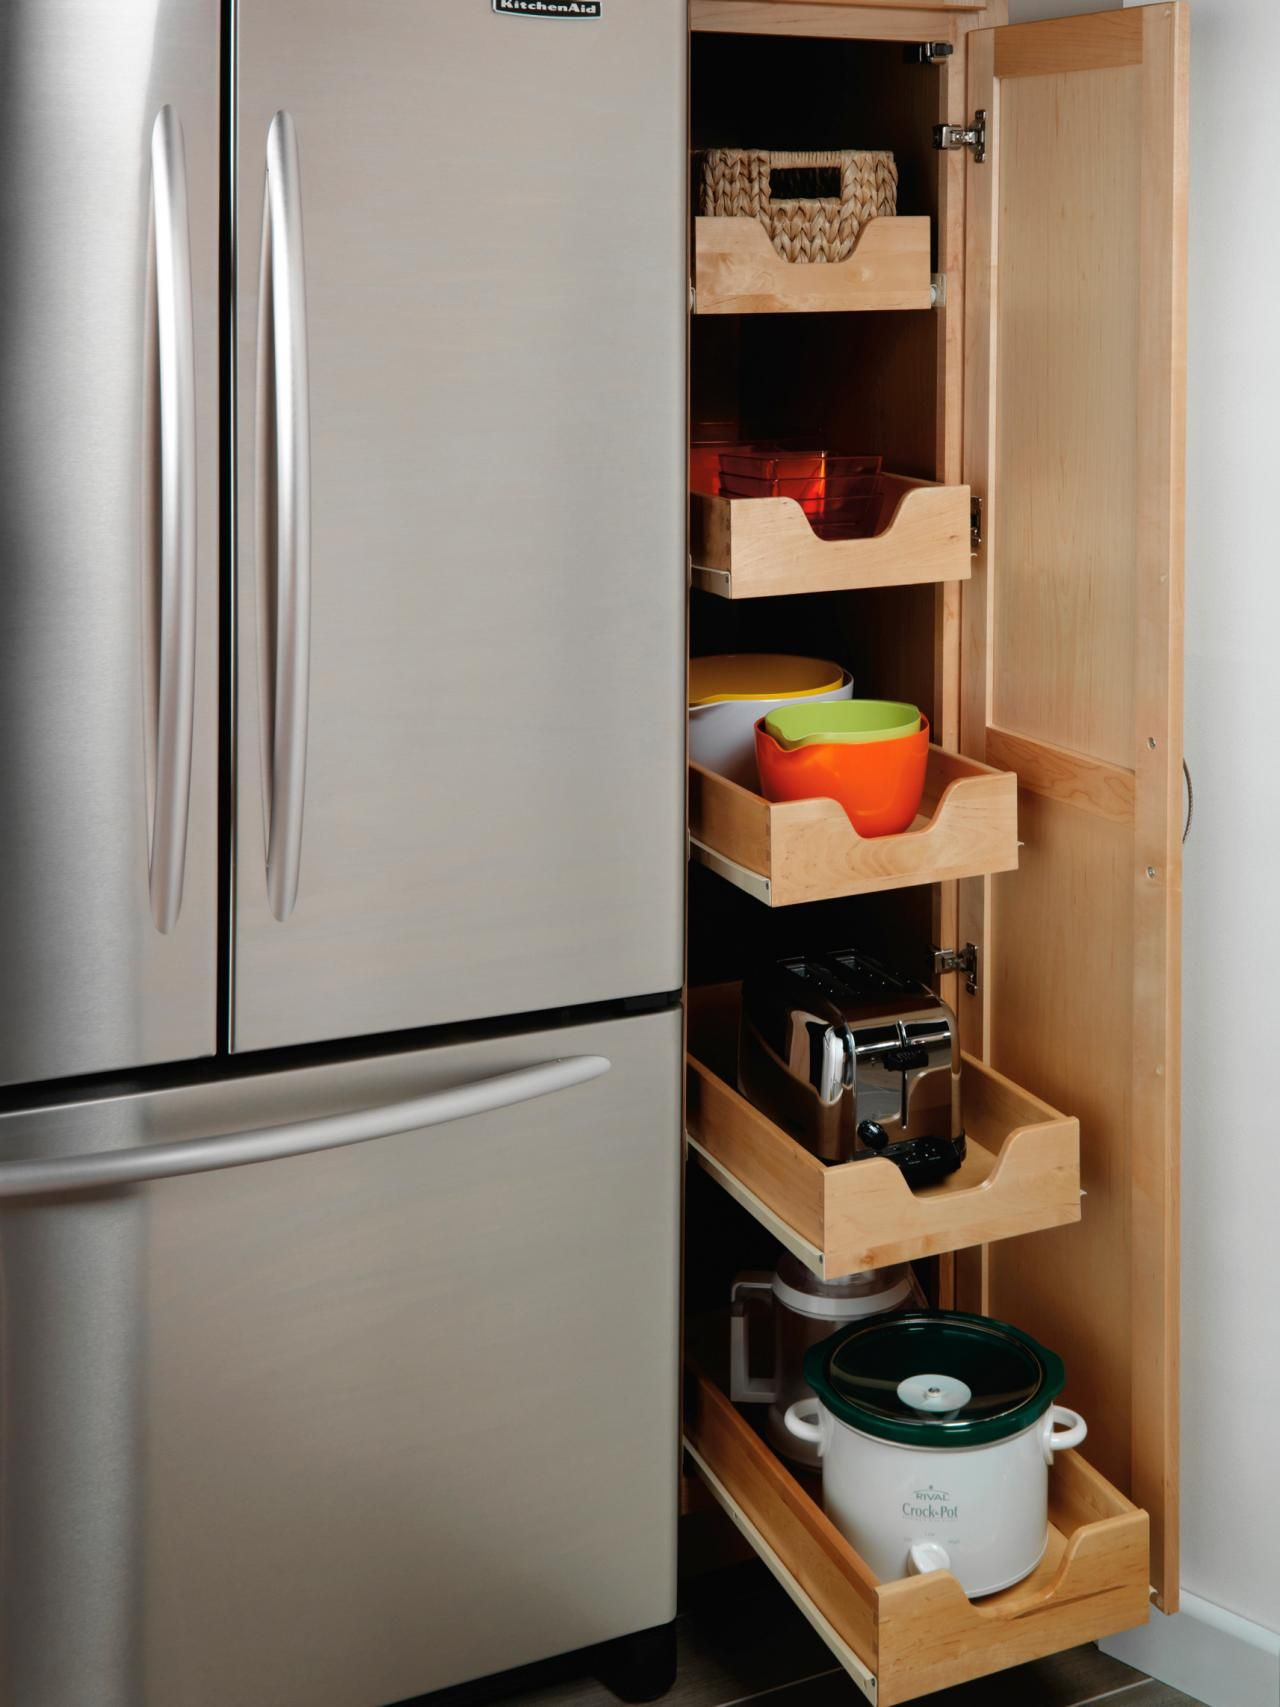 Kitchen Shelf Organization Pantry Cabinets And Cupboards Organization Ideas And Options